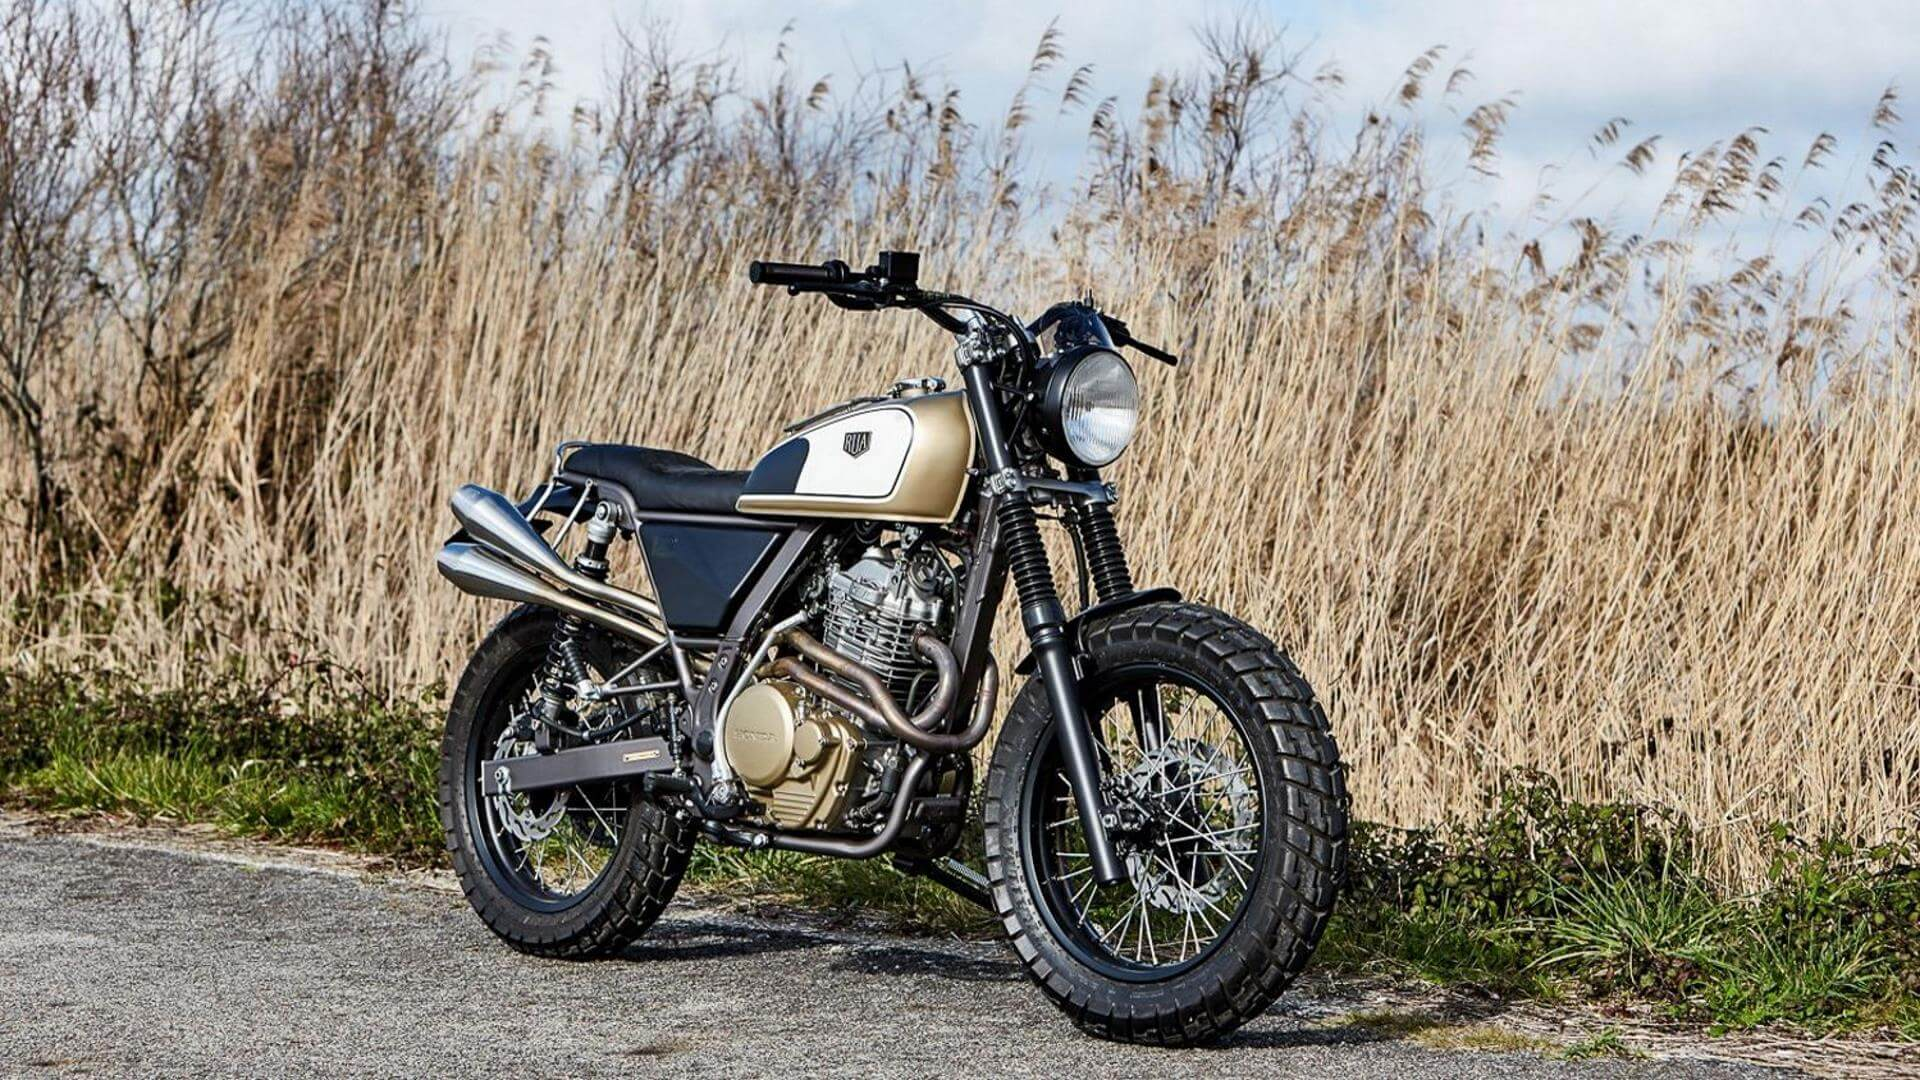 Honda NX650 Dominator by Rua machines